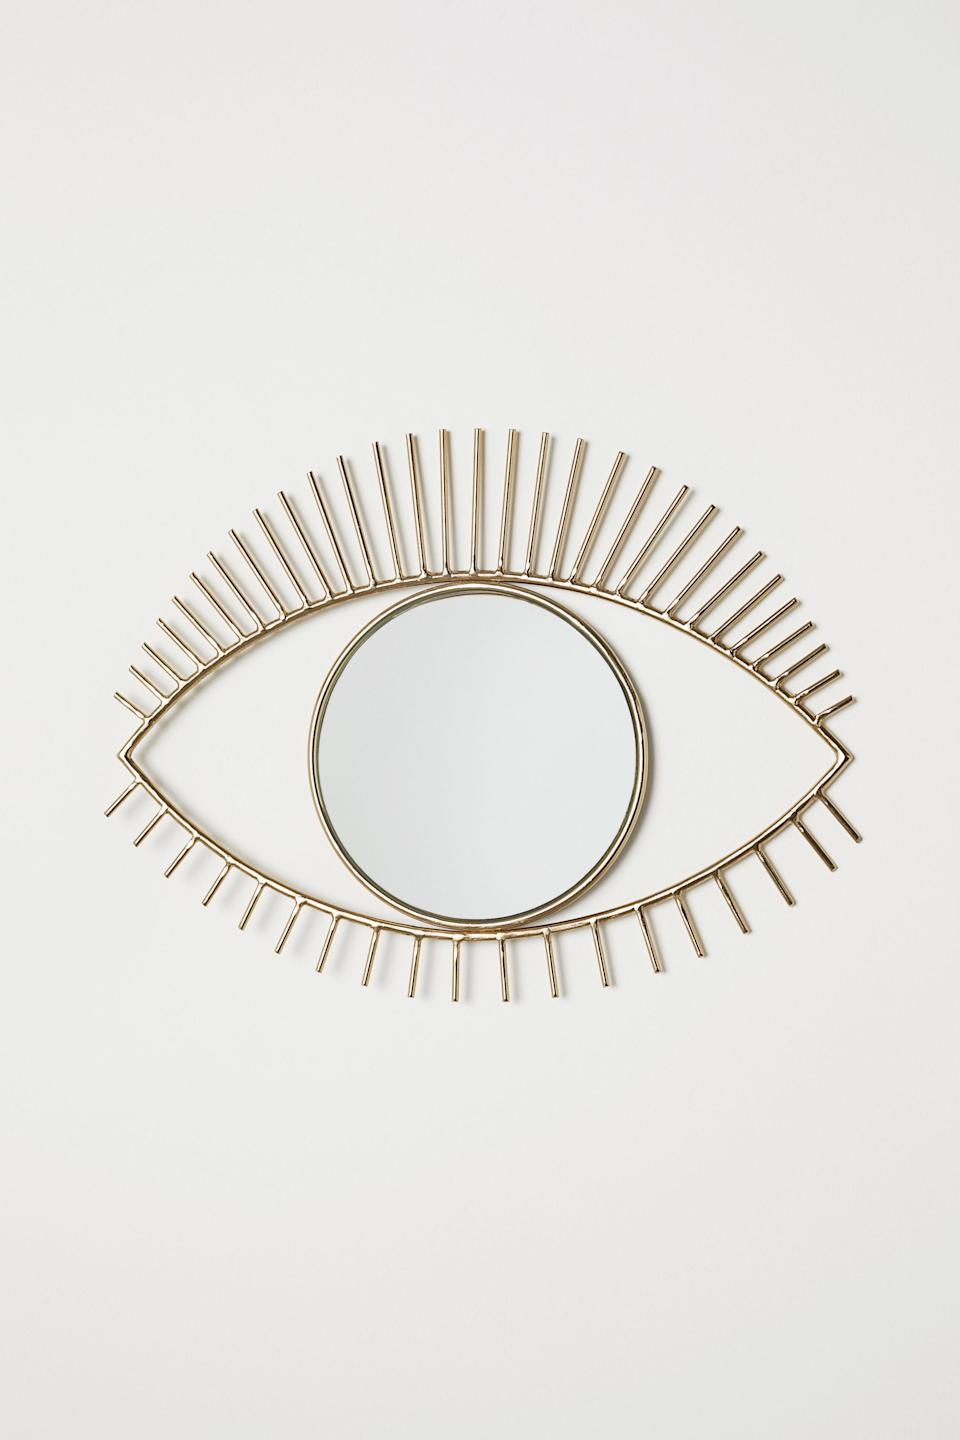 "<br> <br> <strong>H&M Home</strong> Eye-shaped Mirror, $, available at <a href=""https://go.skimresources.com/?id=30283X879131&url=https%3A%2F%2Fwww2.hm.com%2Fen_us%2Fproductpage.0568234001.html"" rel=""nofollow noopener"" target=""_blank"" data-ylk=""slk:H&M"" class=""link rapid-noclick-resp"">H&M</a>"